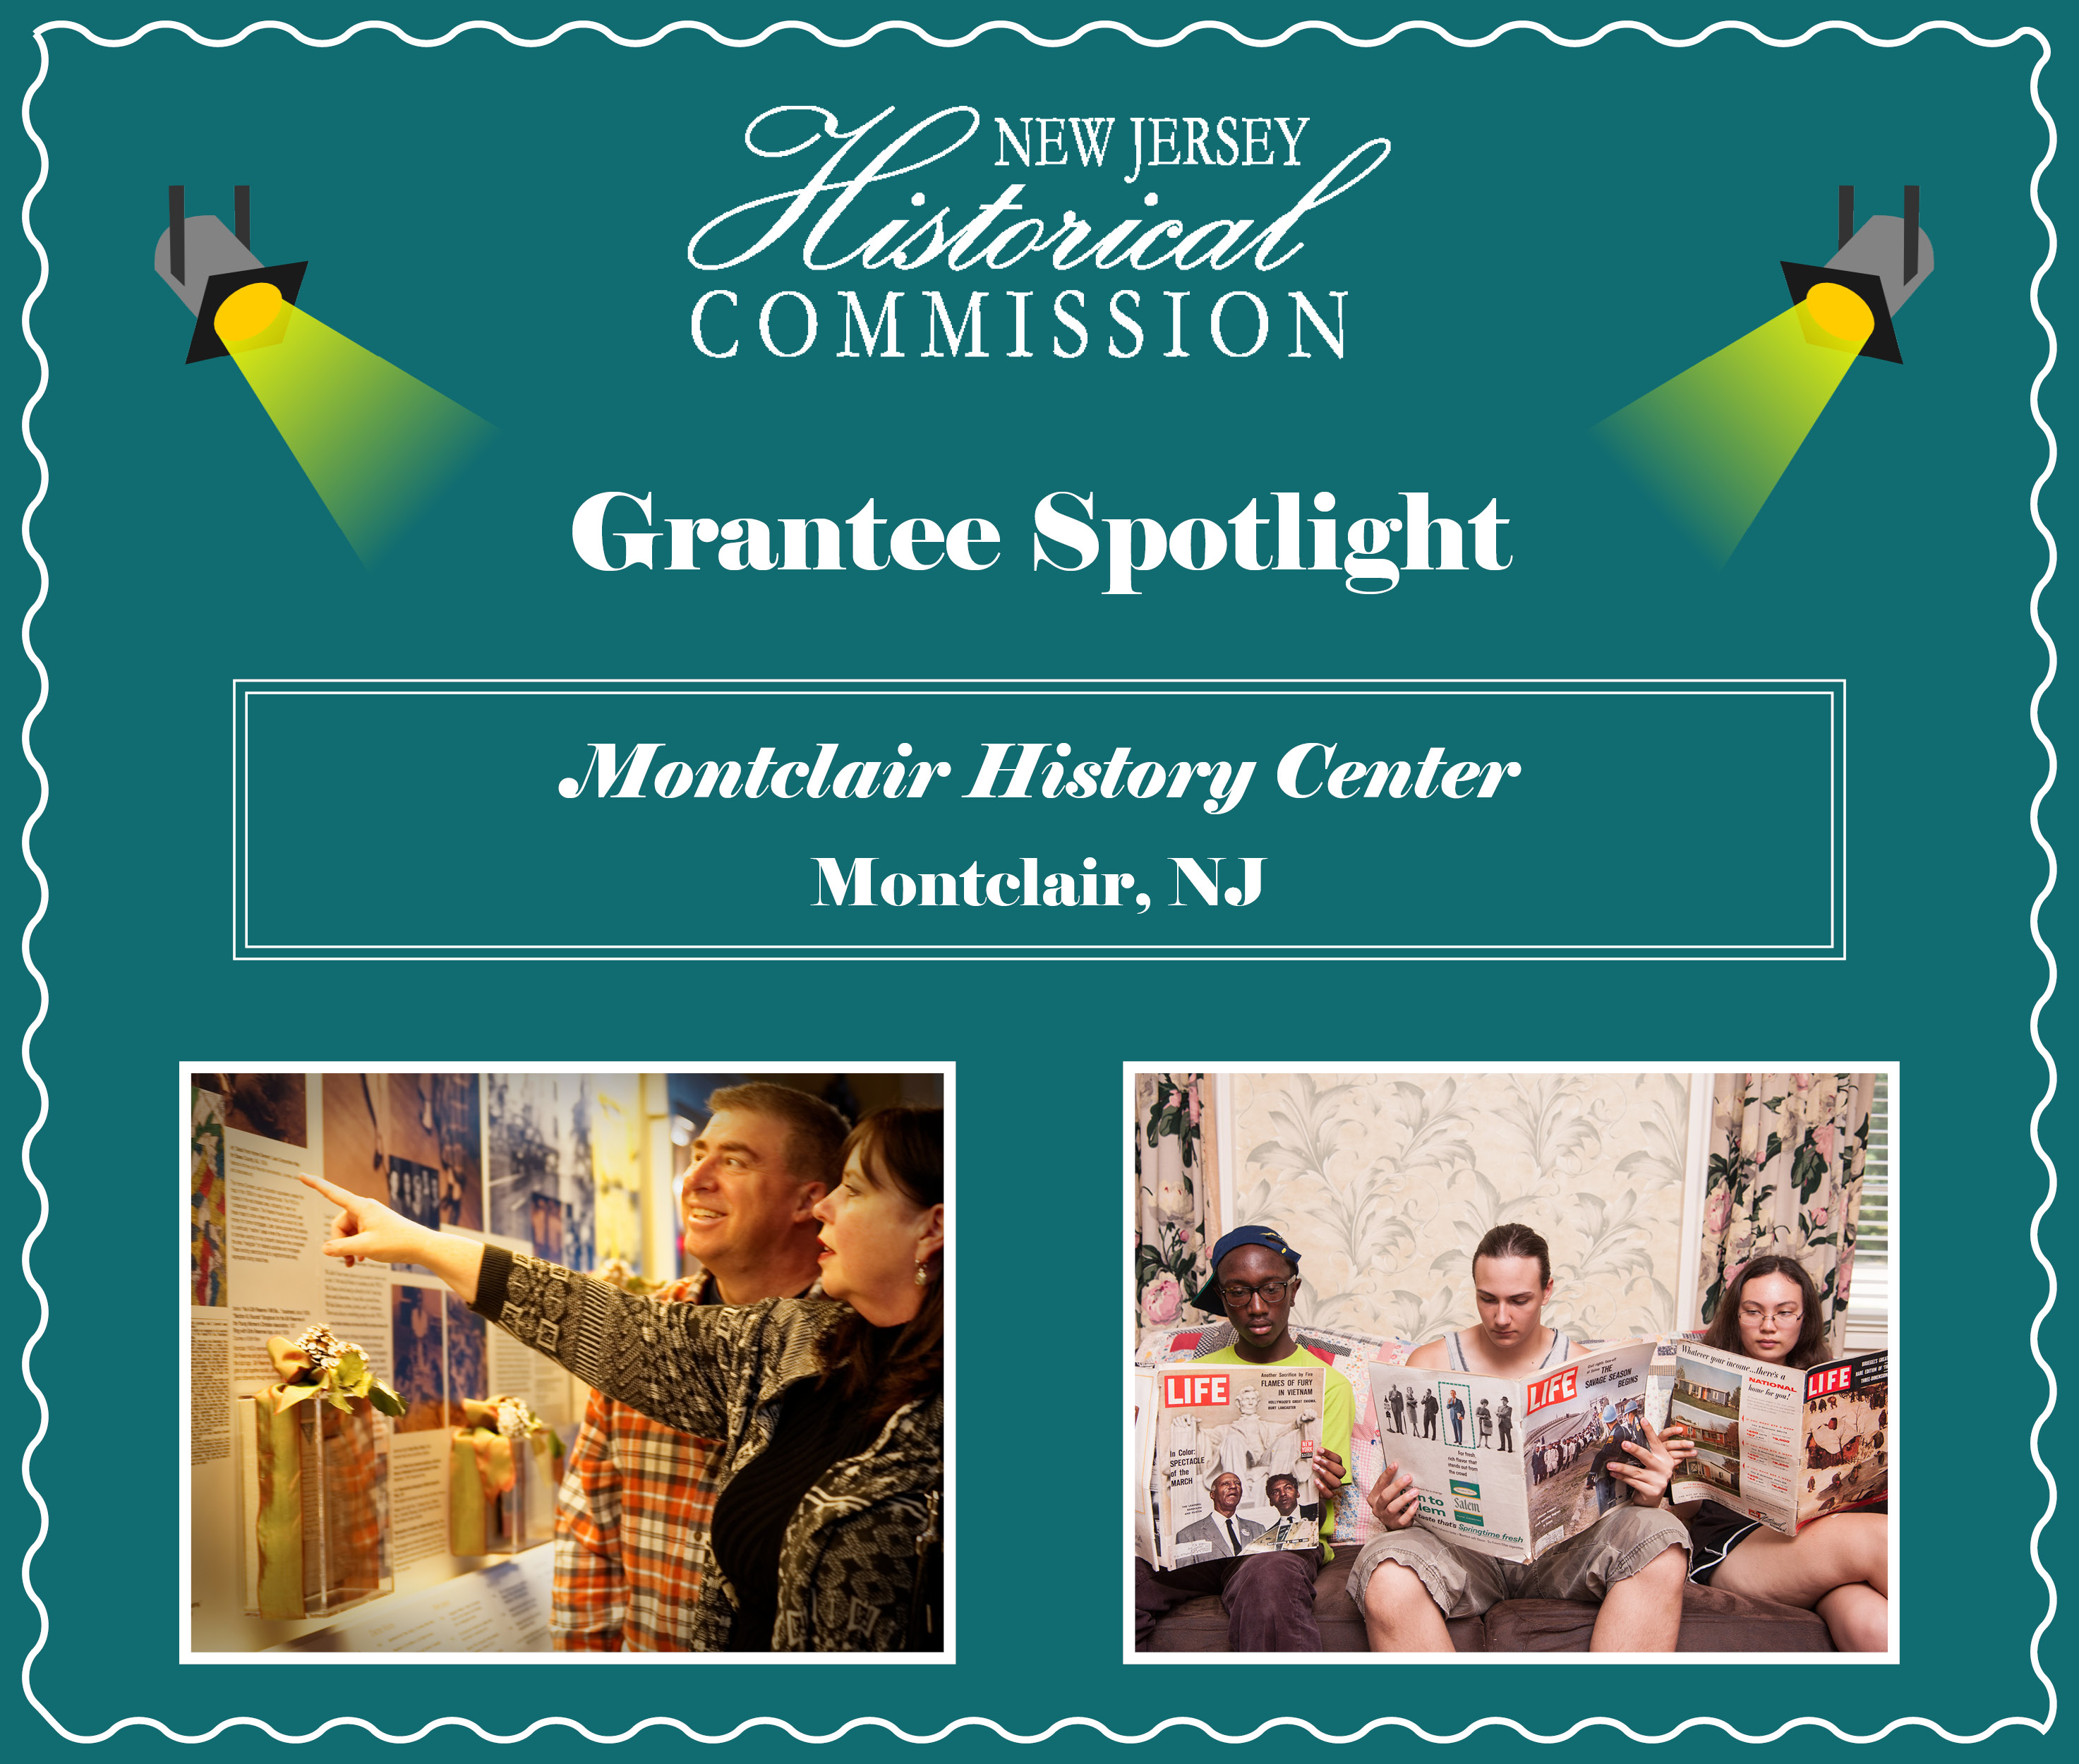 New Jersey Historical Commission (NJHC) Grantee Spotlight: Montclair History Center